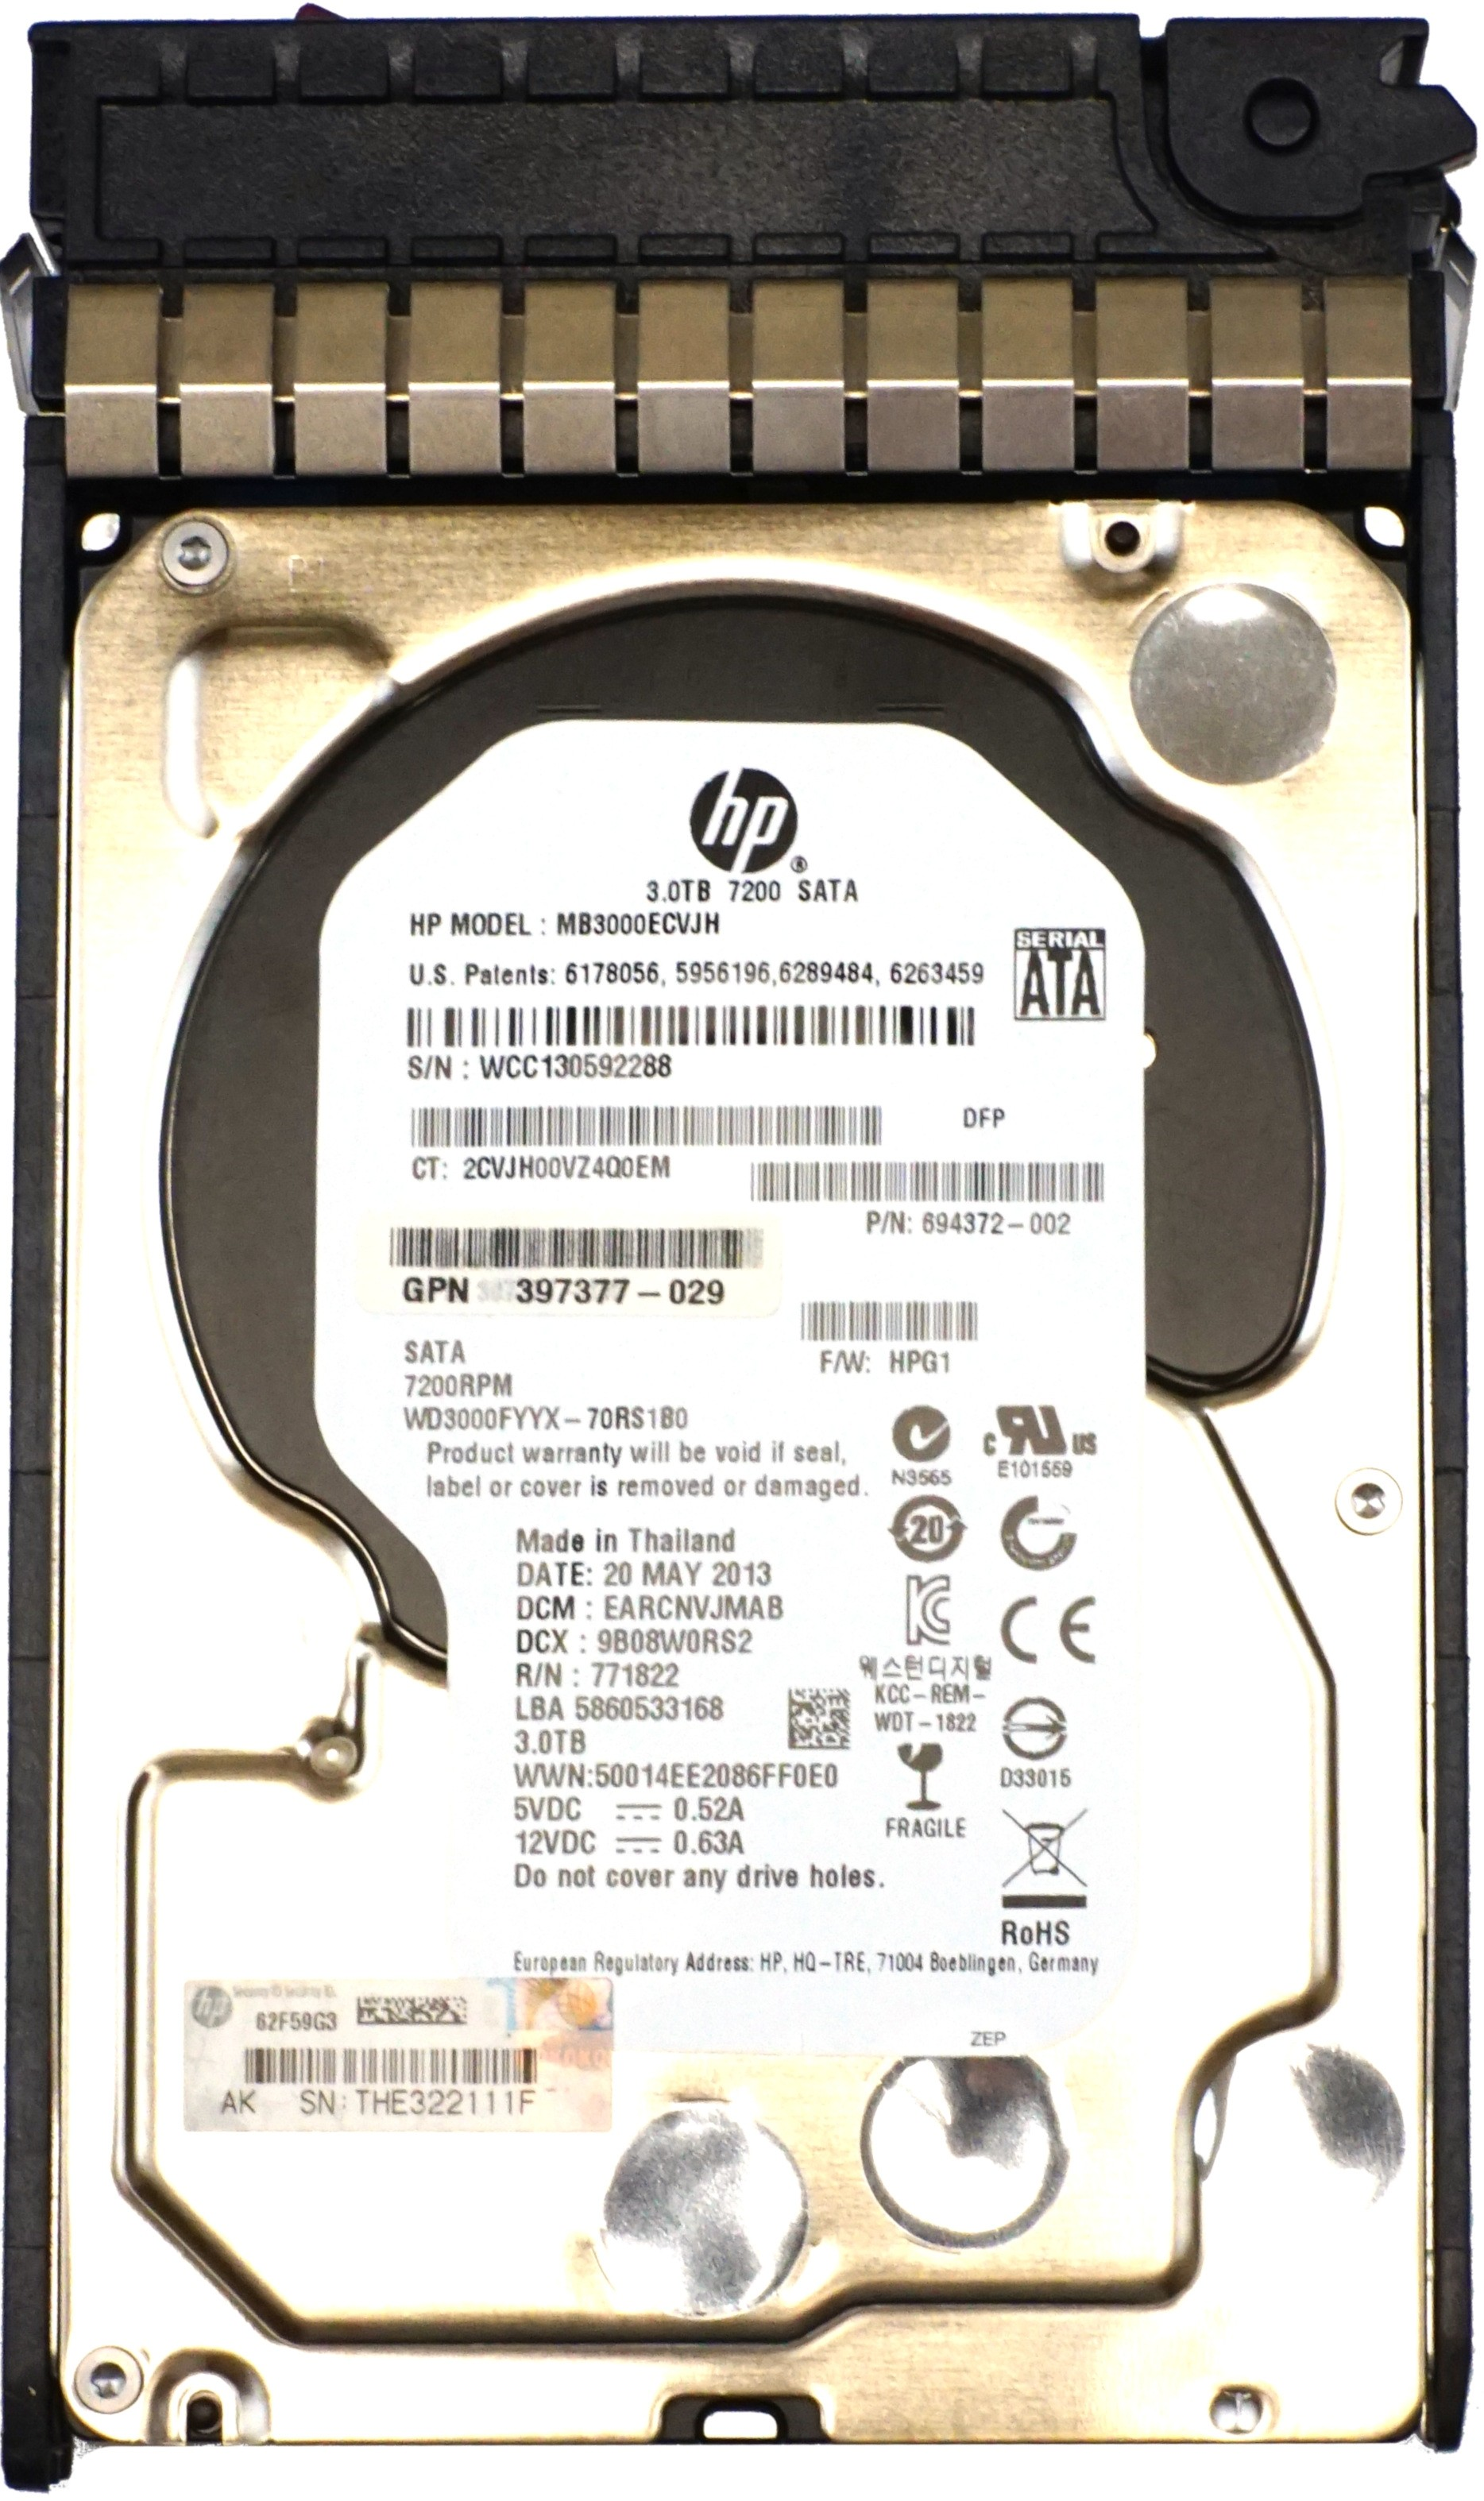 hp headquarters address and phone number